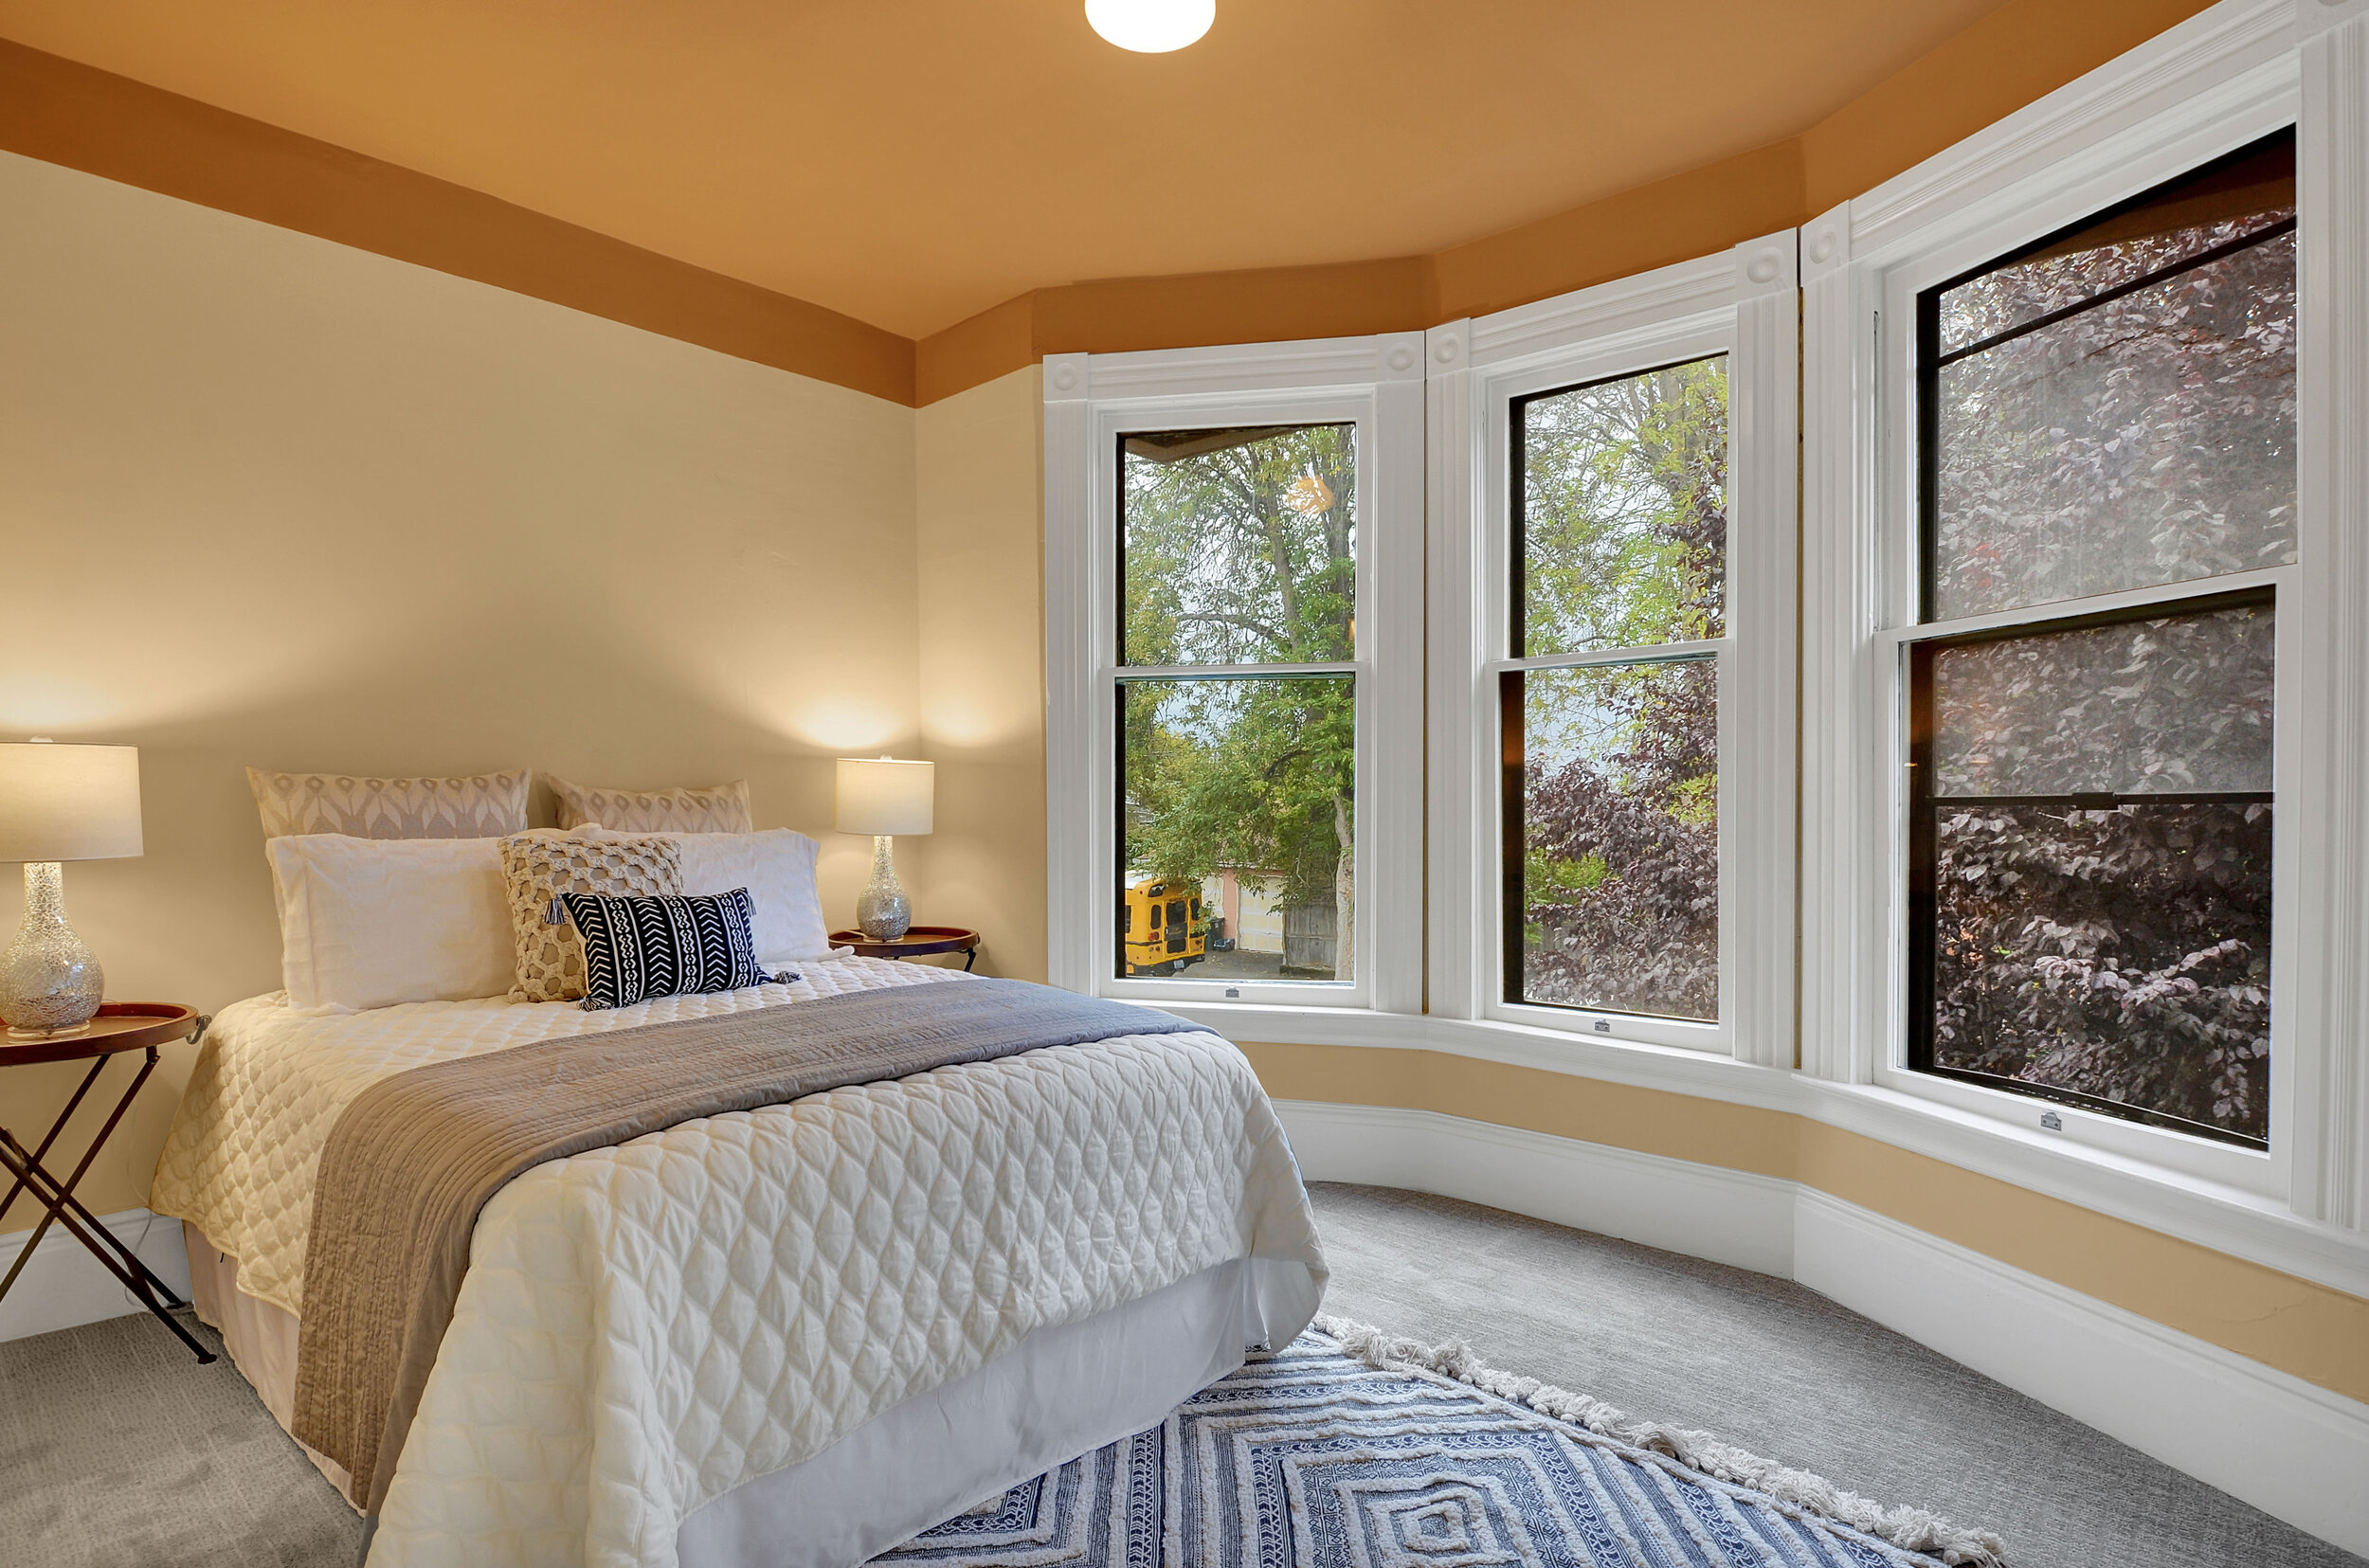 The north bedroom is beautifully lit with bay windows overlooking N 9th St, just like in the dining room below.